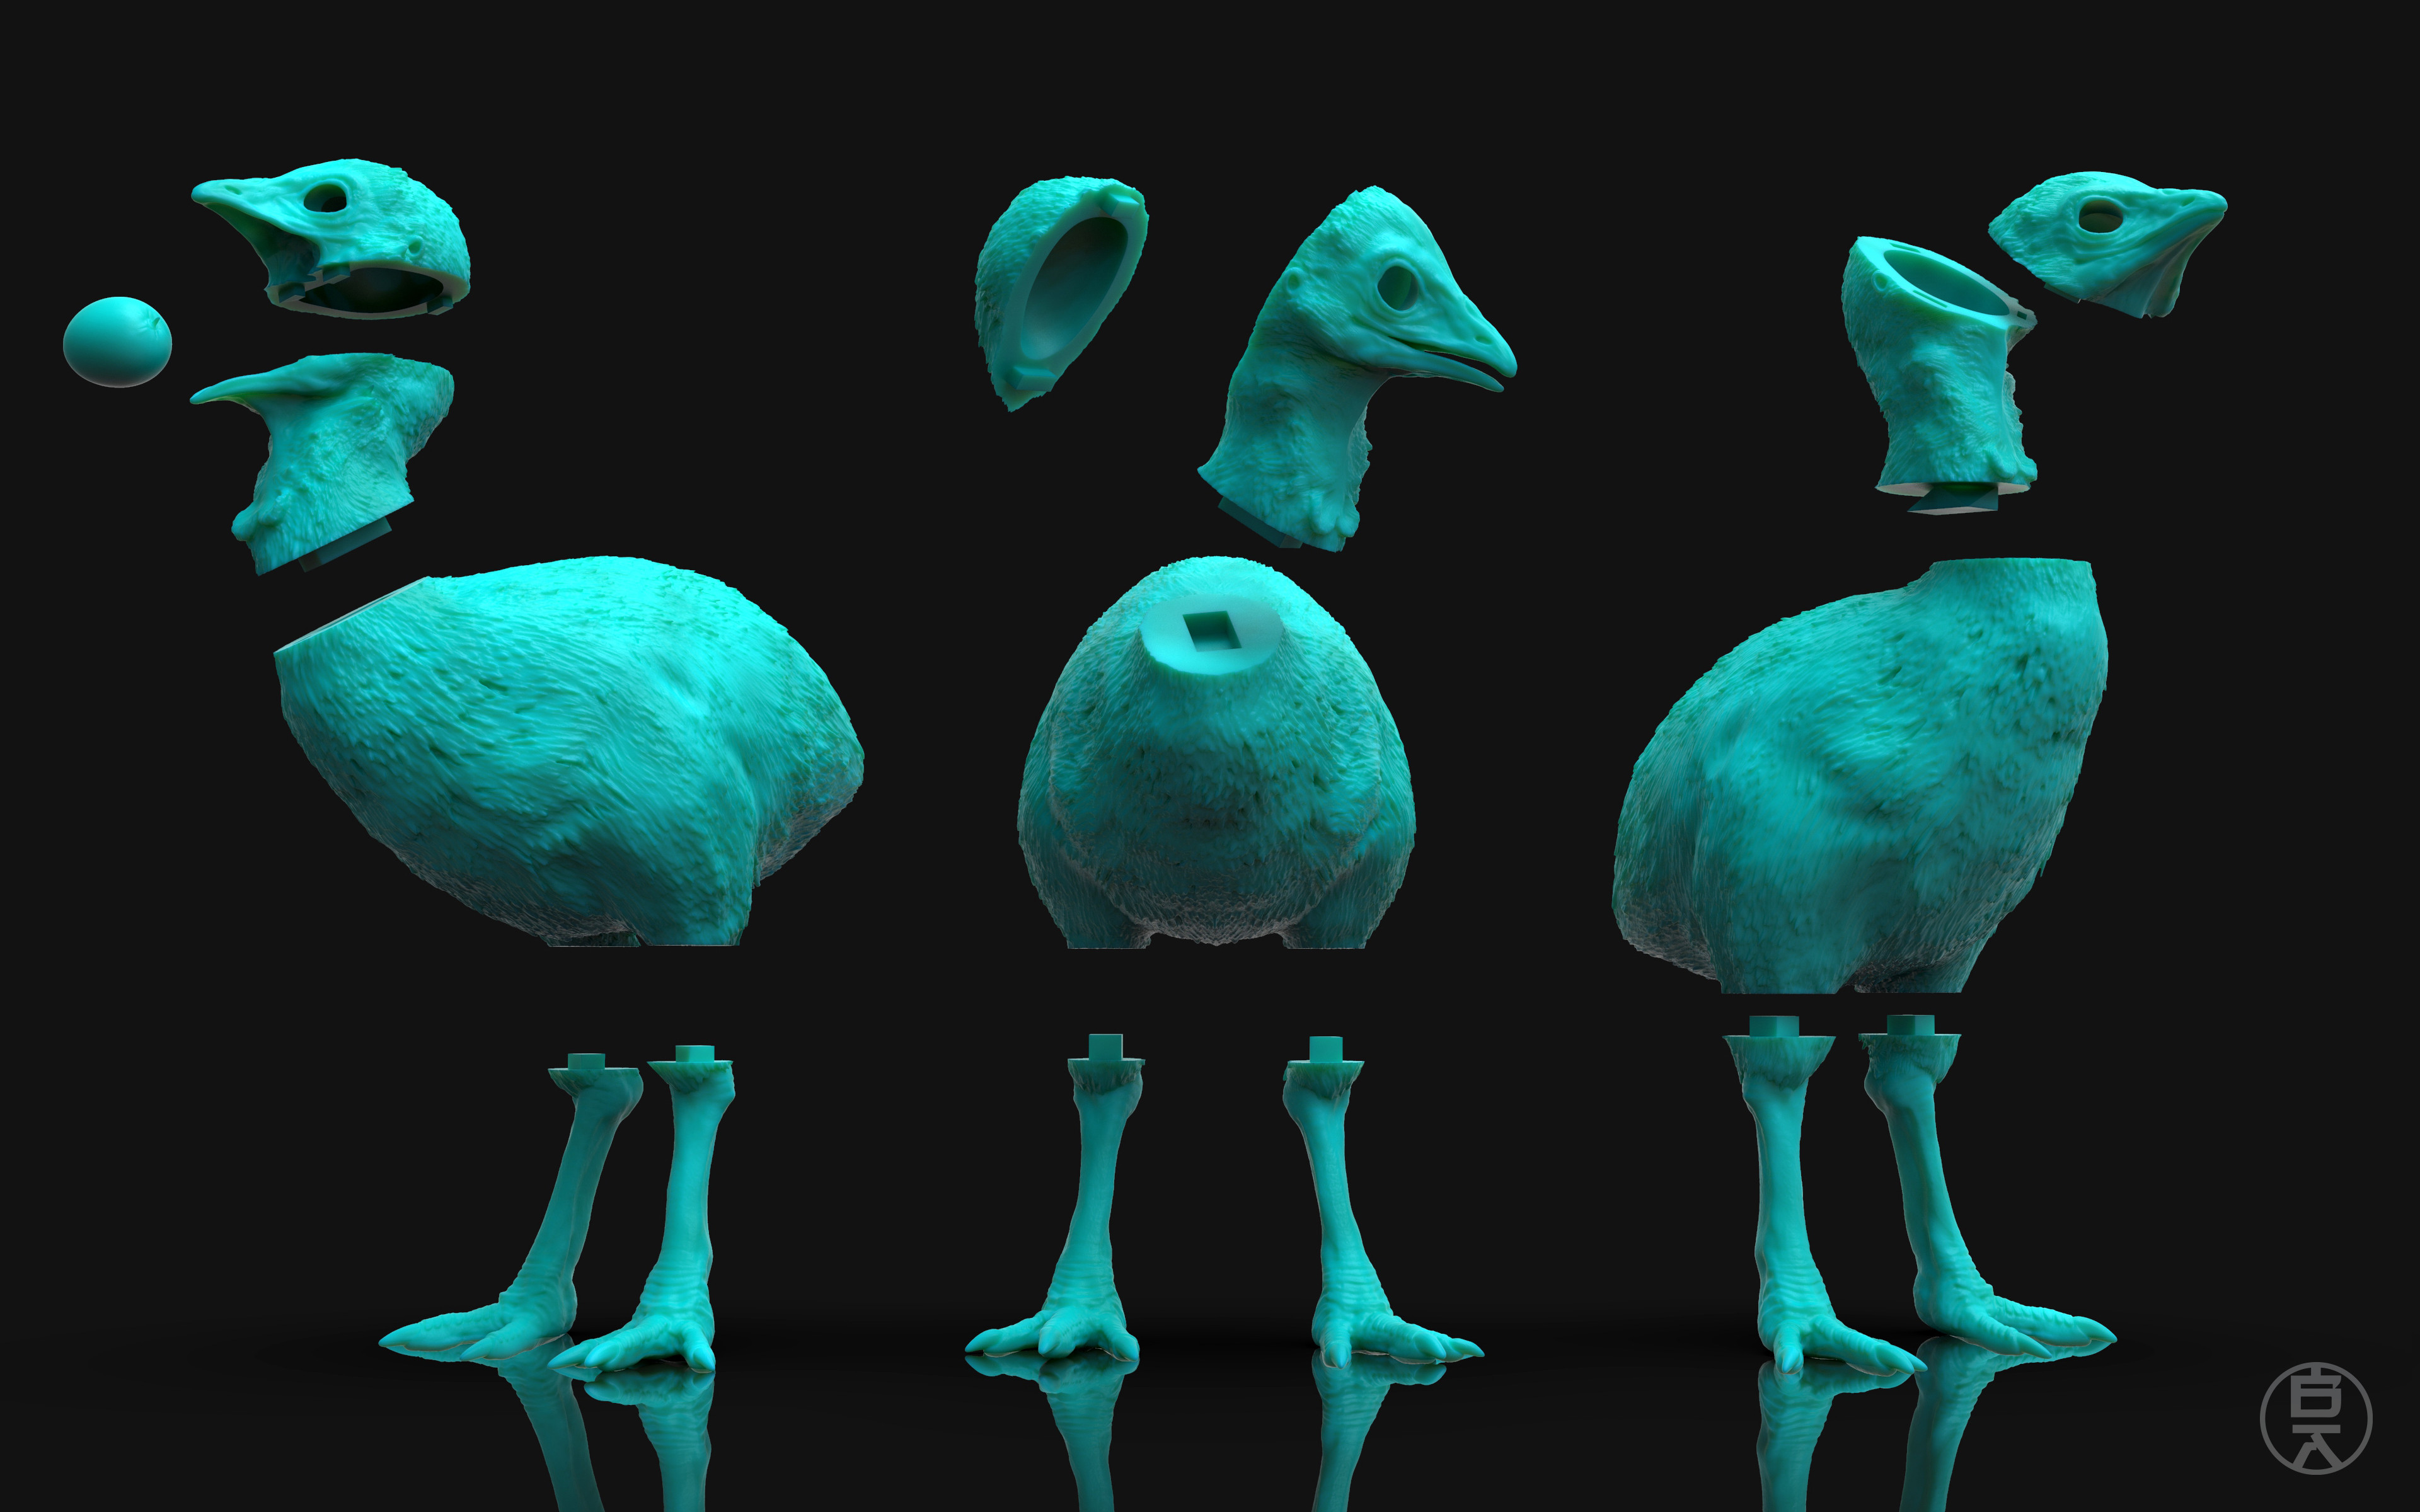 3D Printed Sections & breakdown of parts for the cassowary chicks. Printed on the Formlabs Form 2